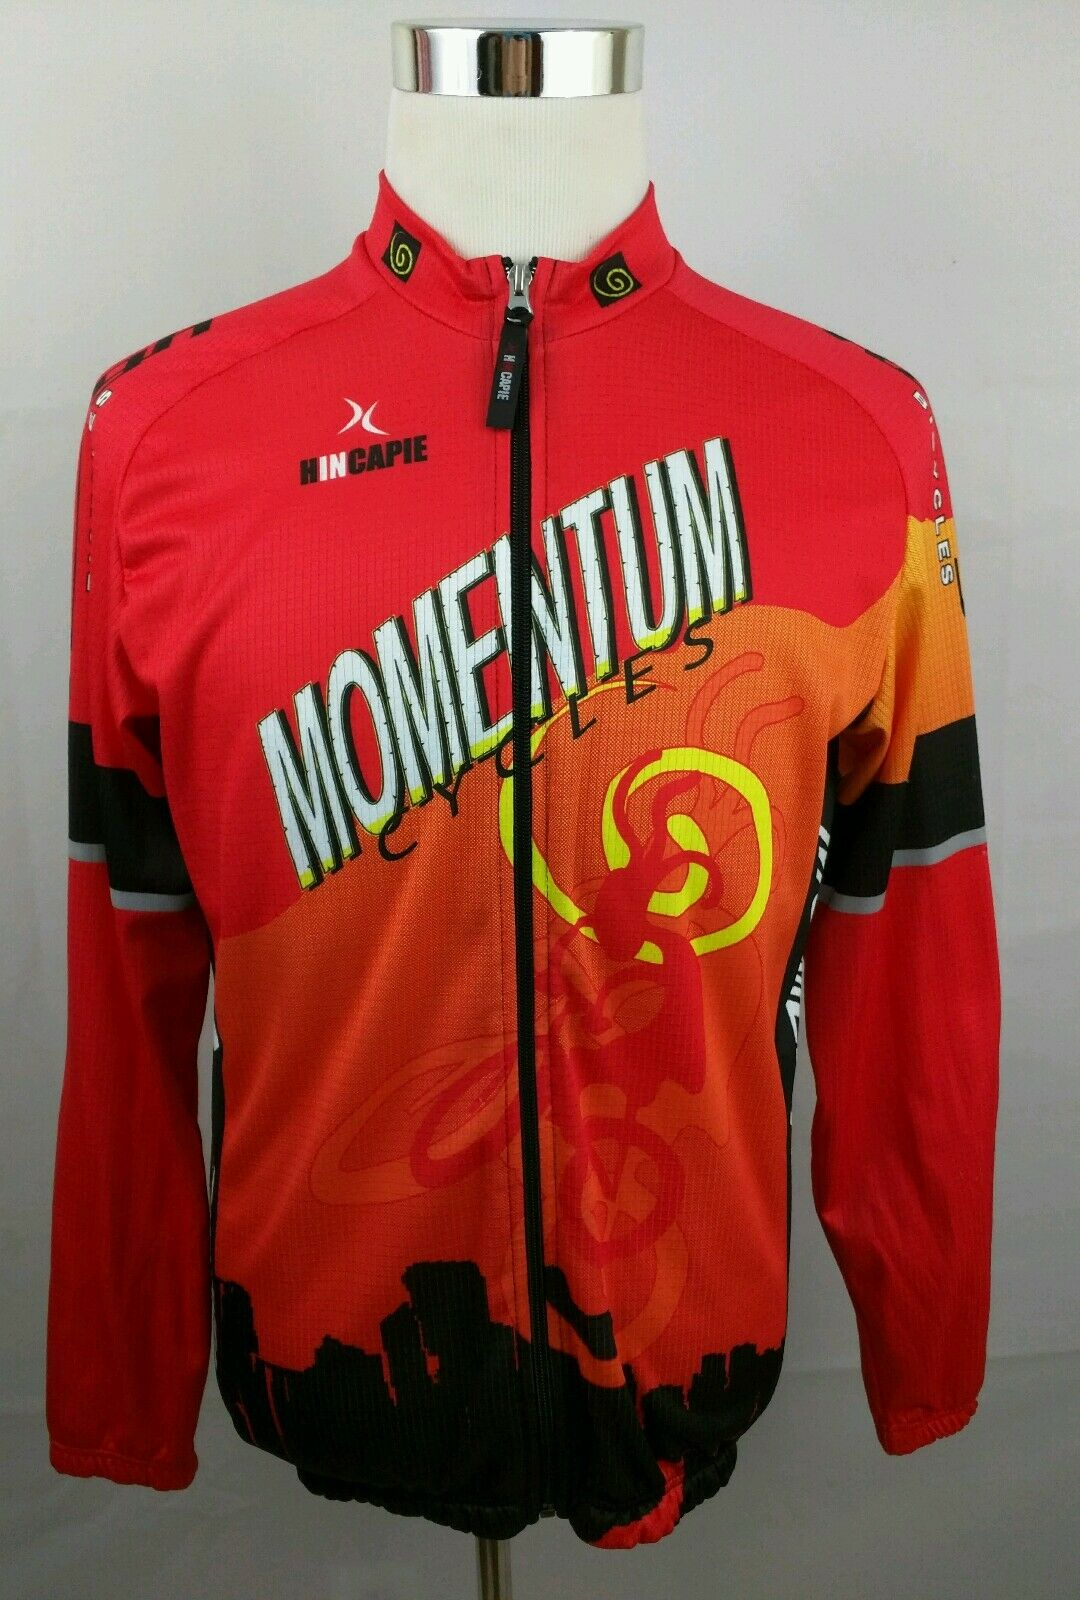 Hincapie Momentum Raleigh Bycicles Cycling Jersey LS XXL